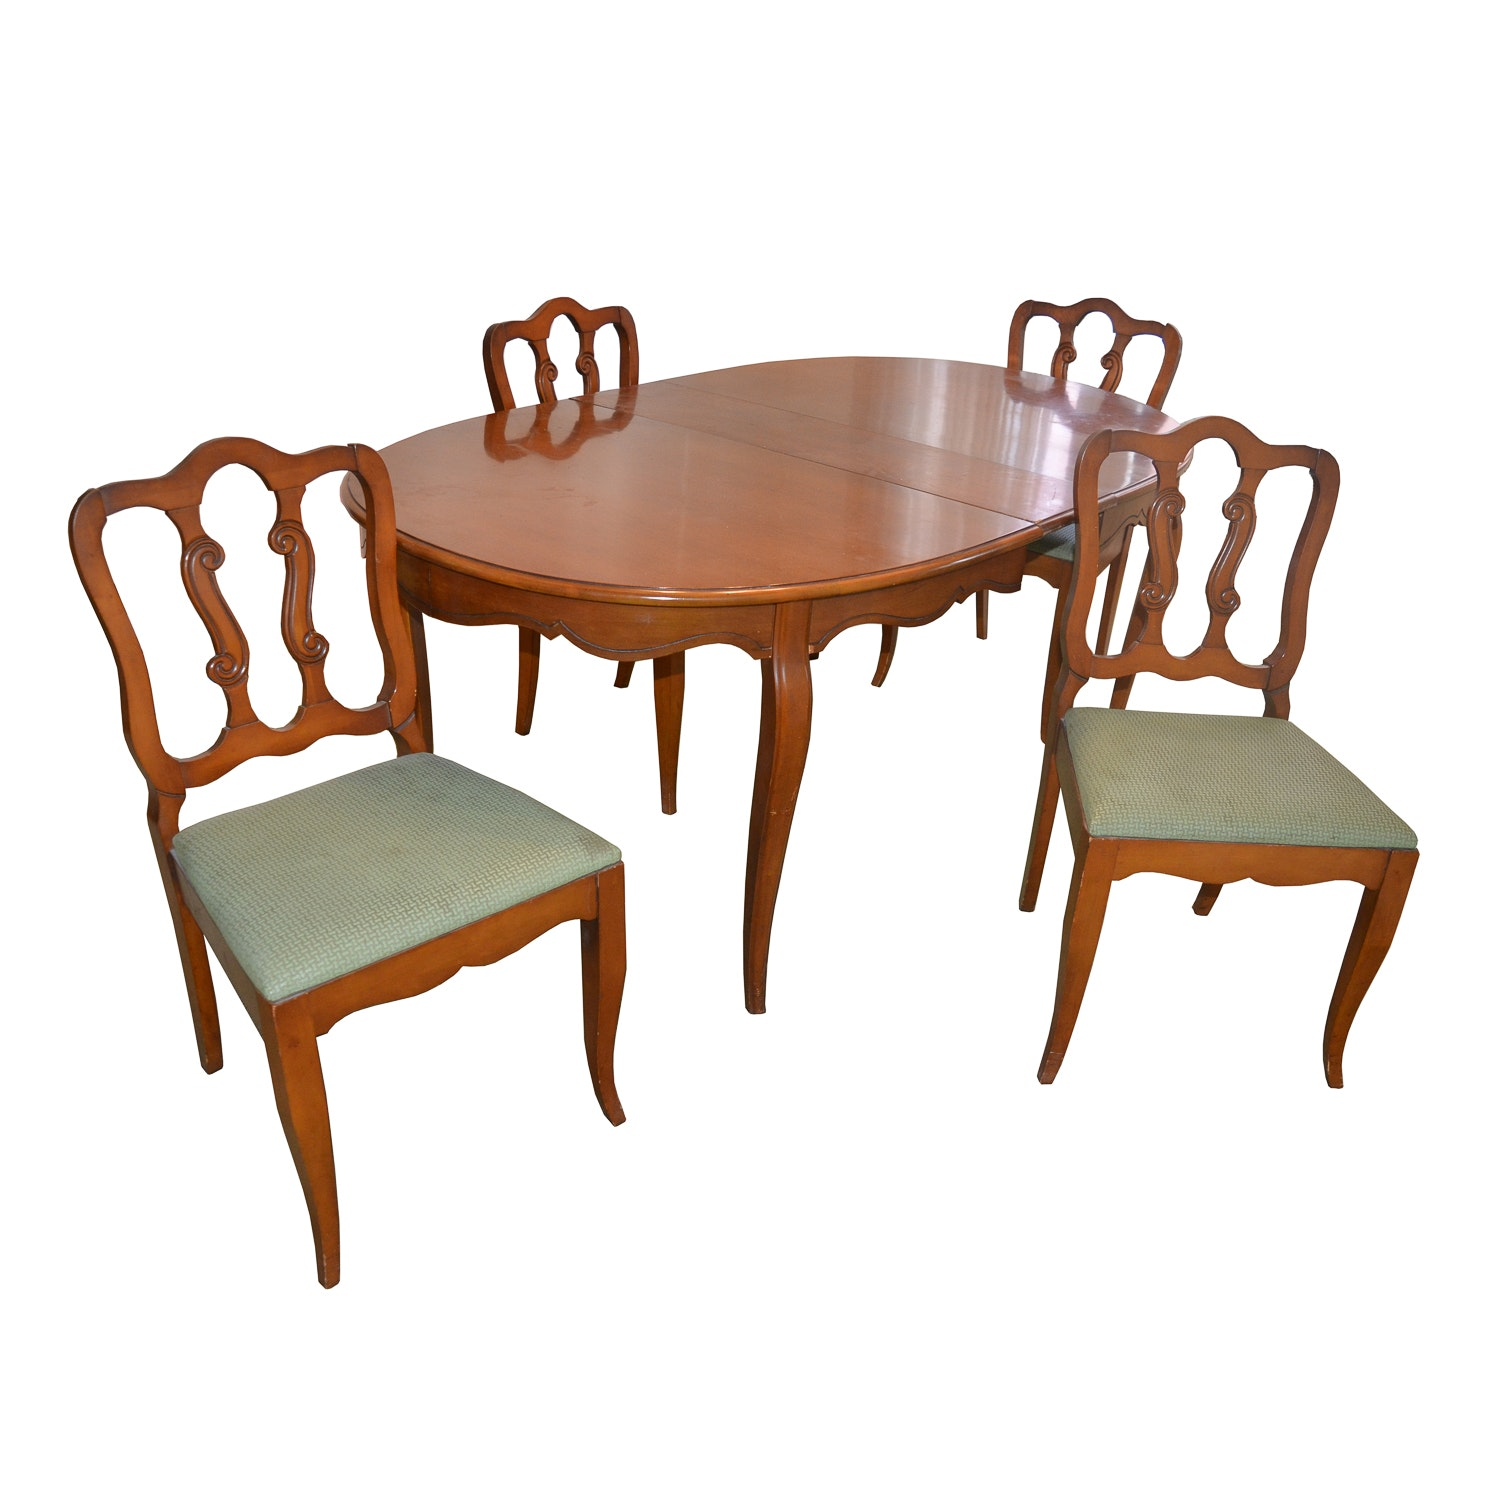 French Provincial Style Oval Dining Table And Dining Chairs : Ebth